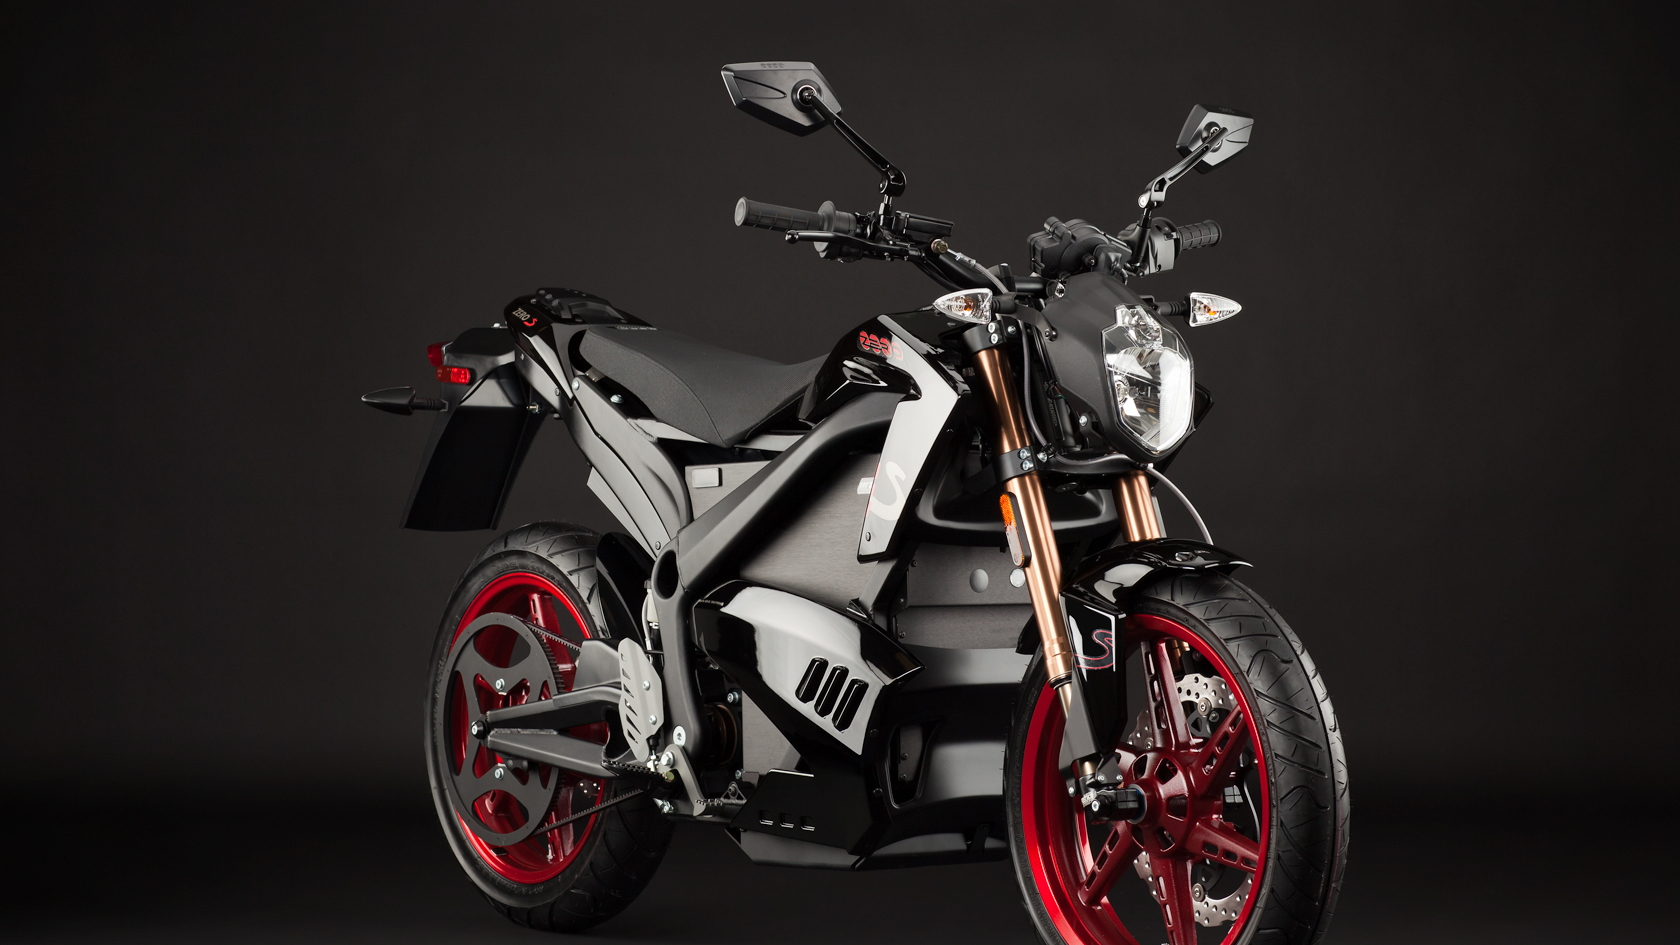 2012 Zero S electric motorcycle